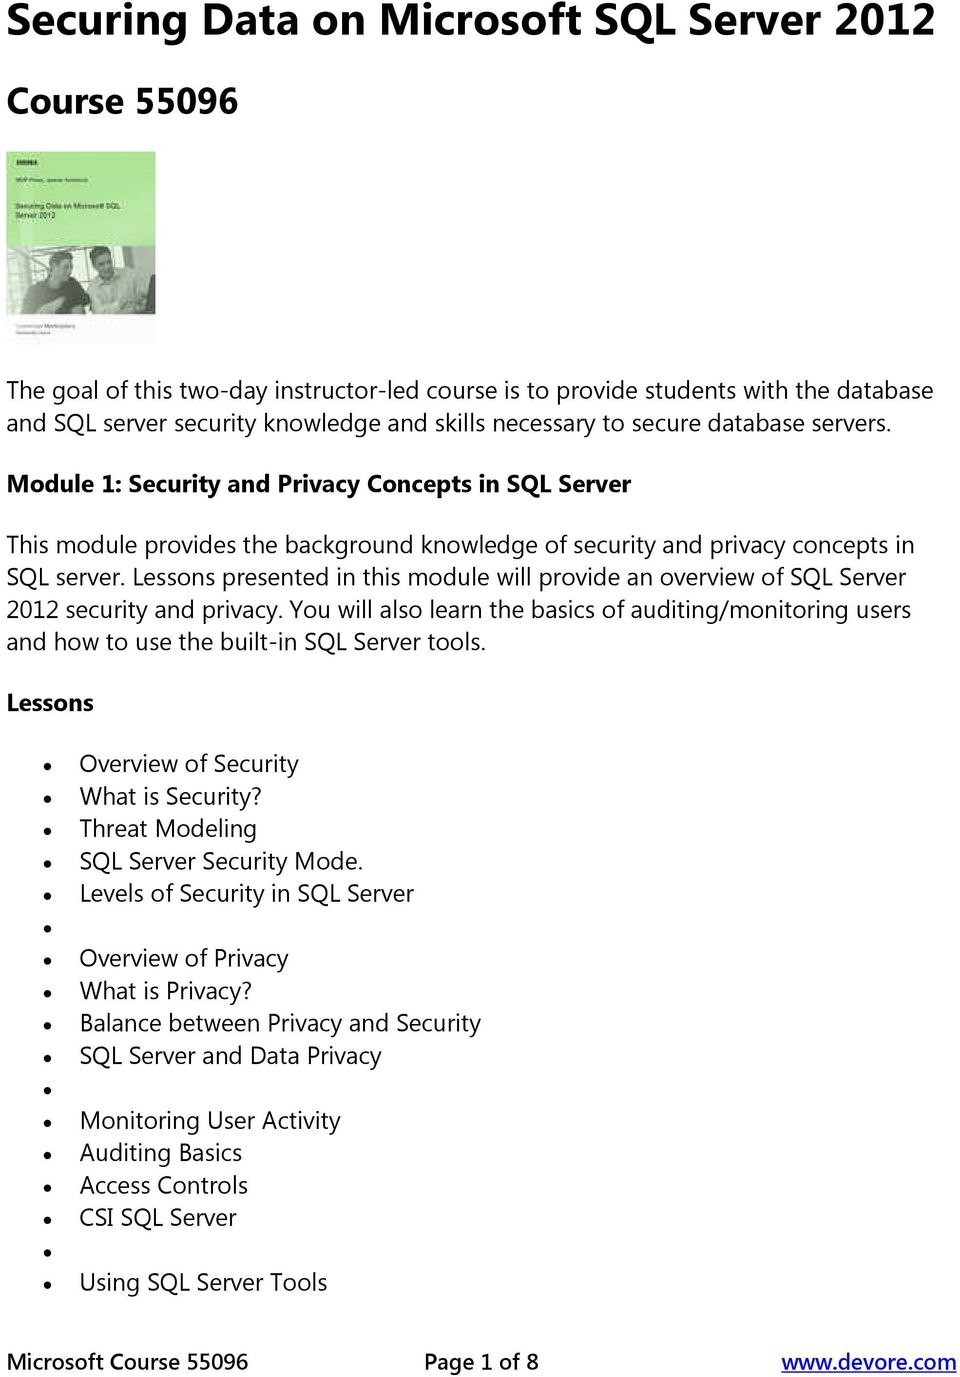 presented in this module will provide an overview of SQL Server 2012 security and privacy. You will also learn the basics of auditing/monitoring users and how to use the built-in SQL Server tools.